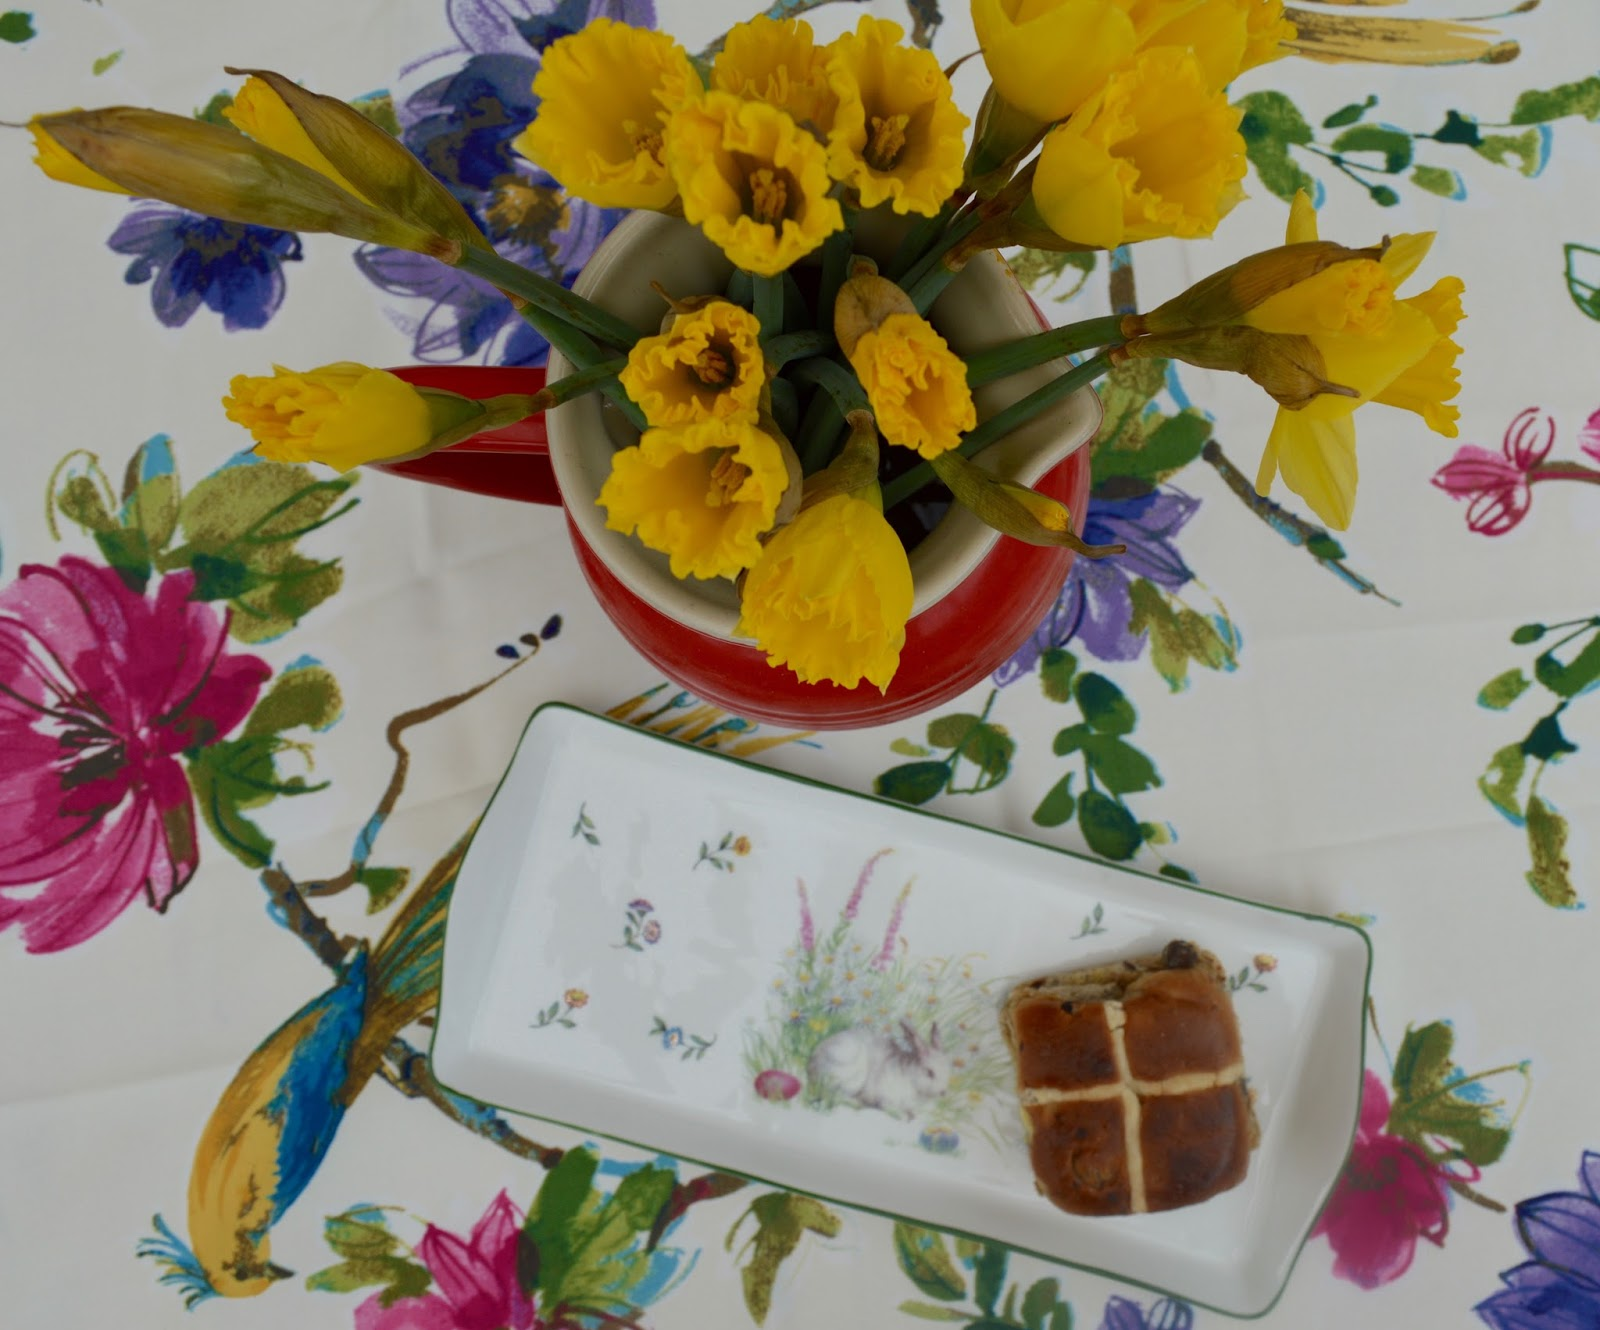 6 questions your children may ask about UK Easter traditions  - hot cross buns and daffodils